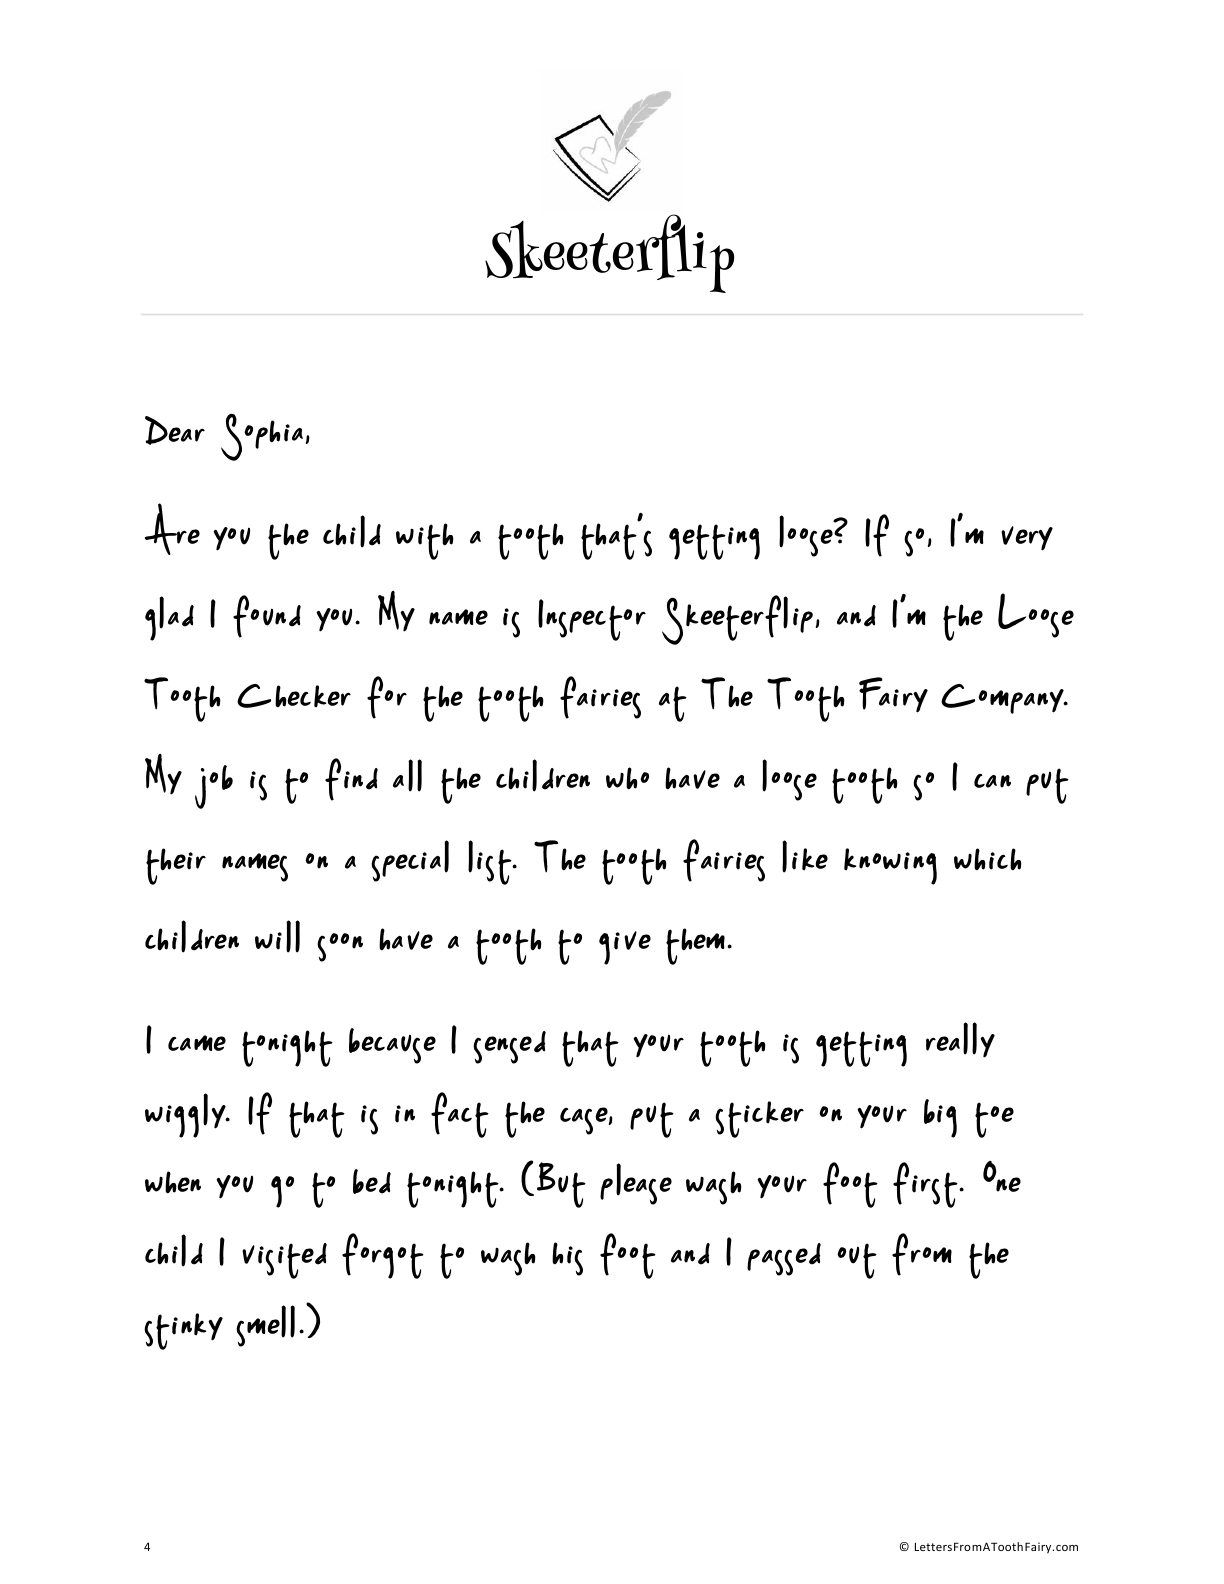 Free tooth fairy letter for the first loose tooth